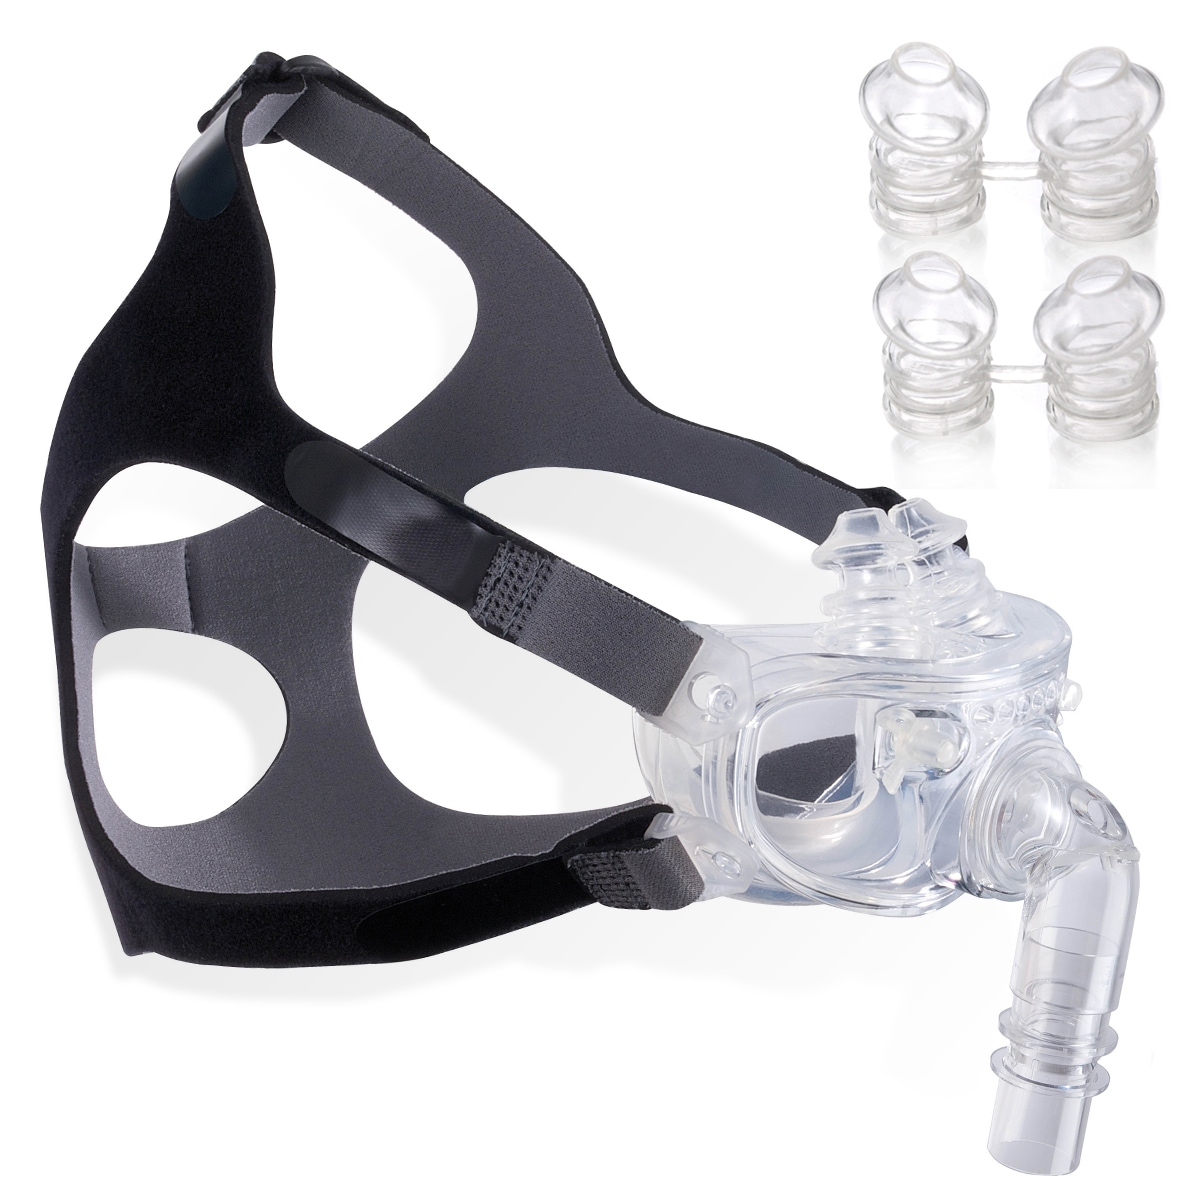 hybrid nasal pillows full face cpap mask fitpack with headgear